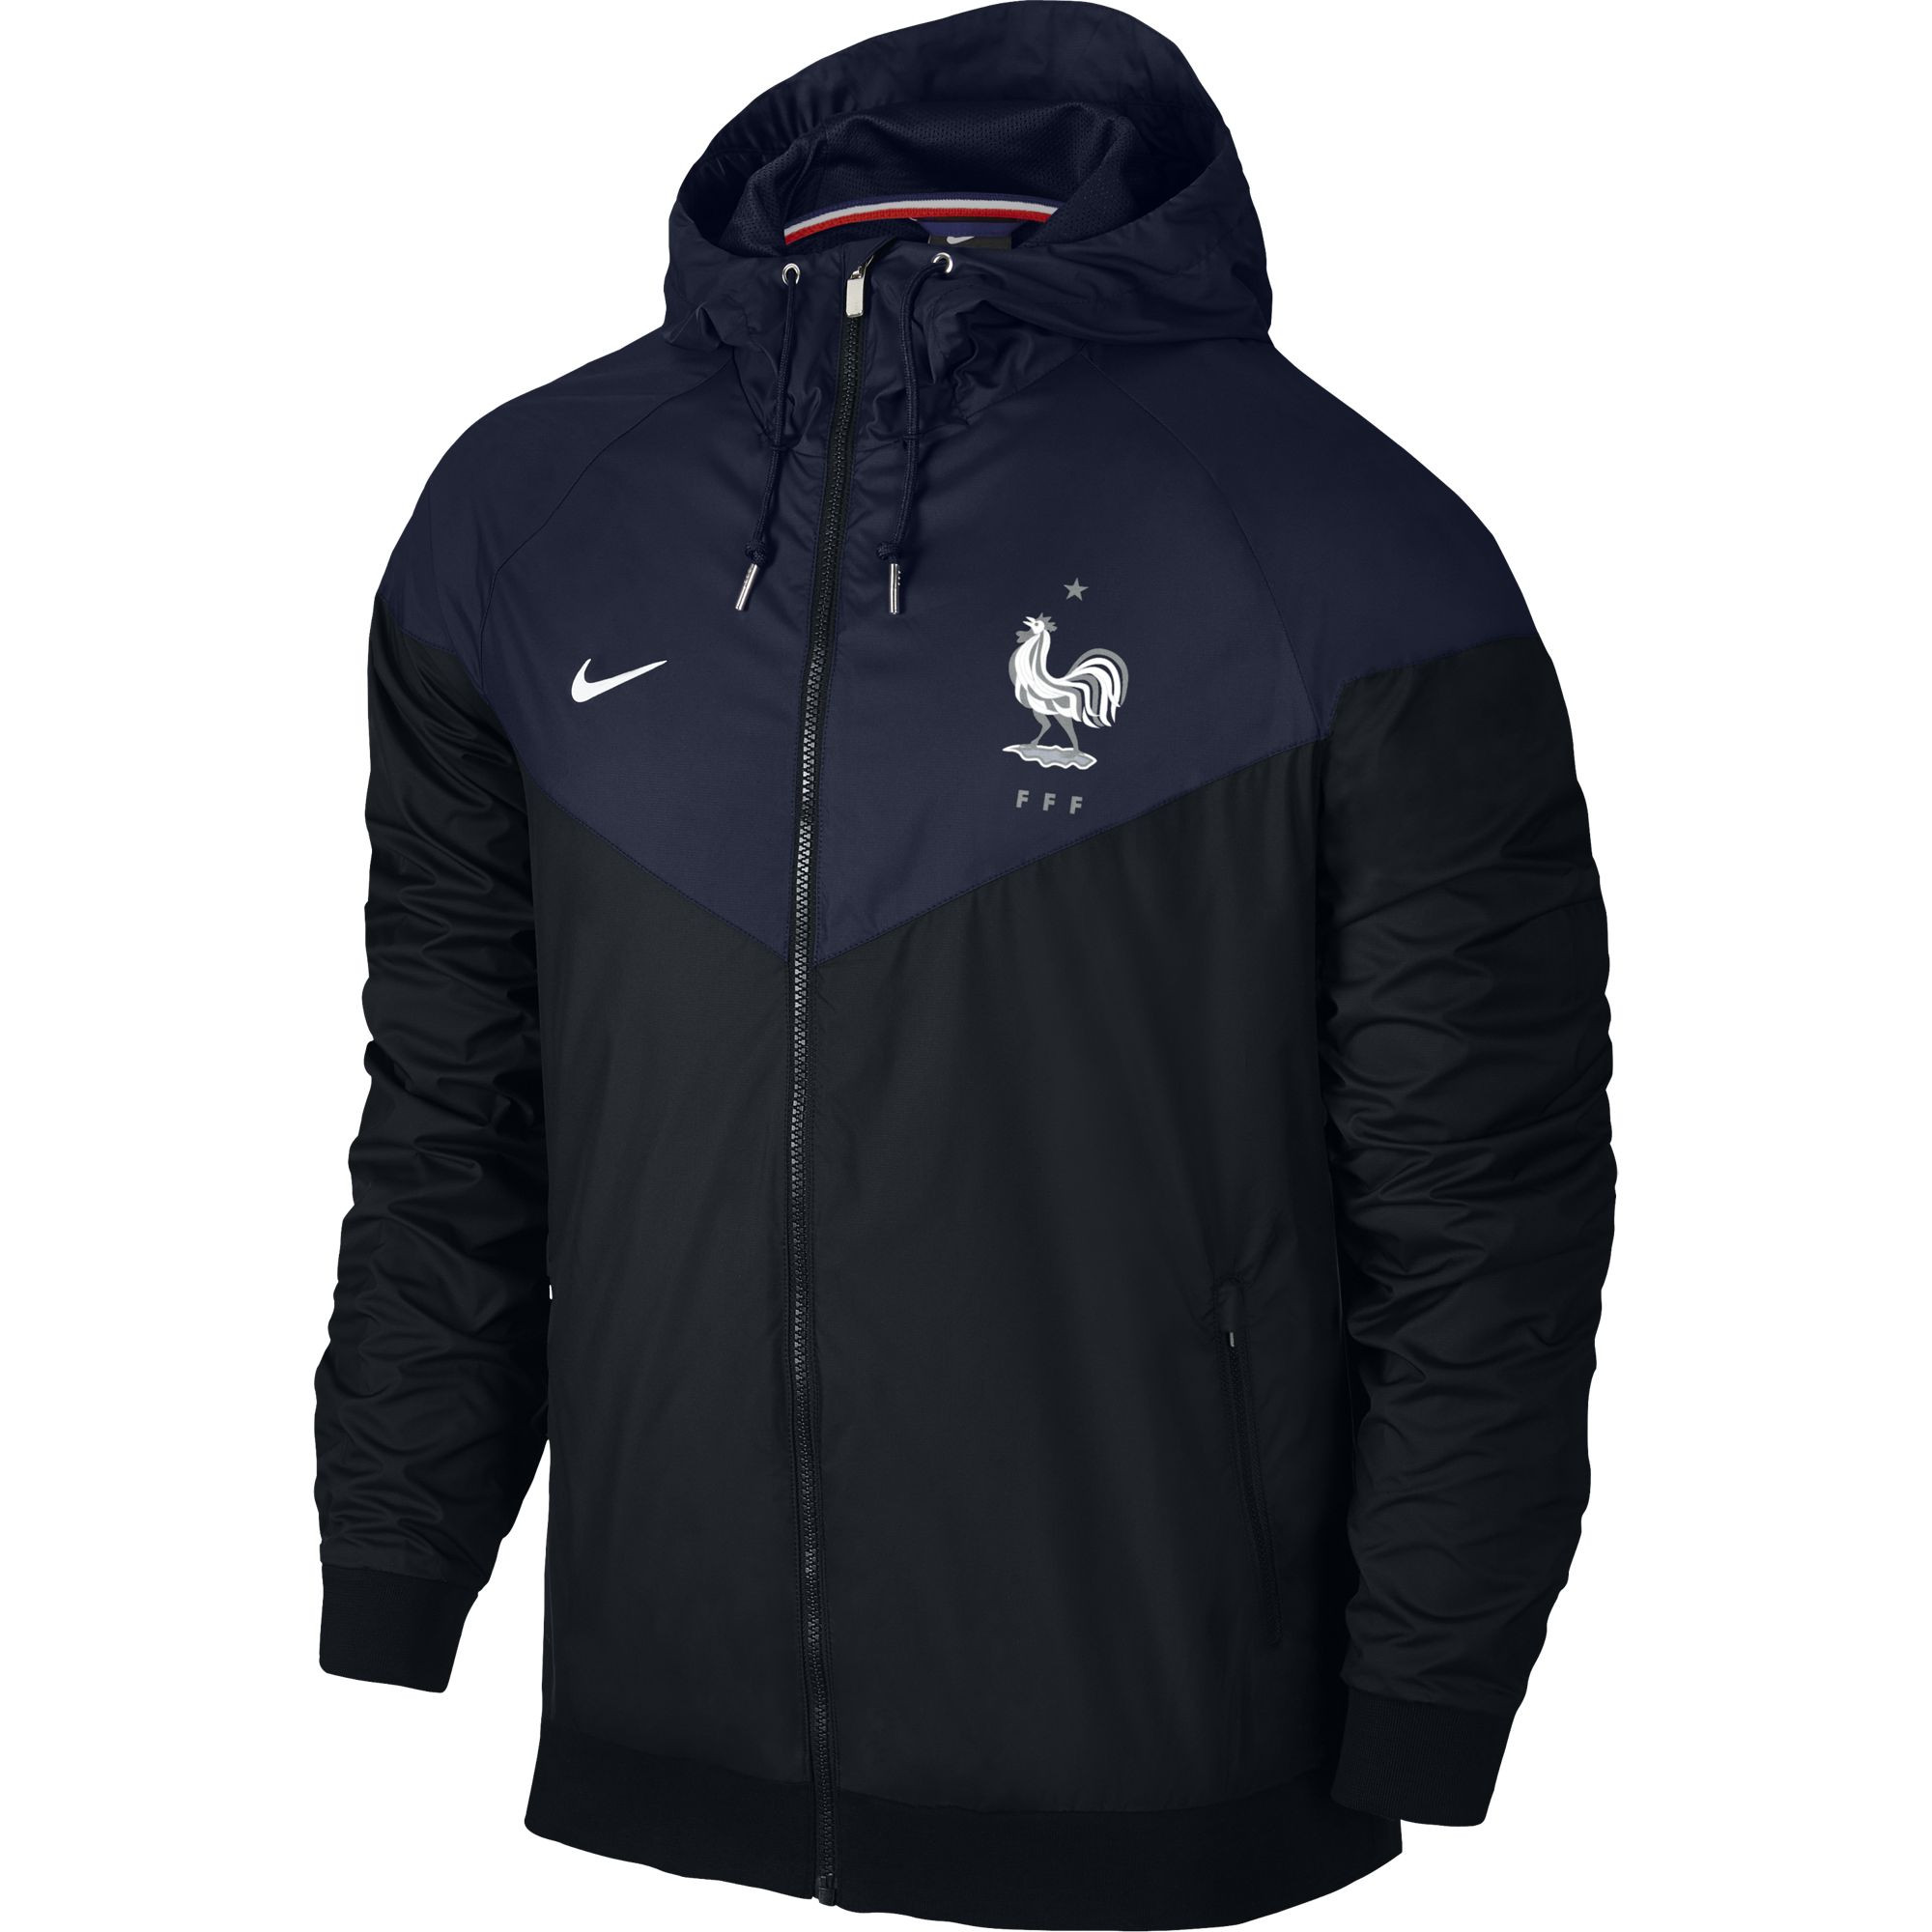 NIKE FFF COUPE VENT MARINE 2016